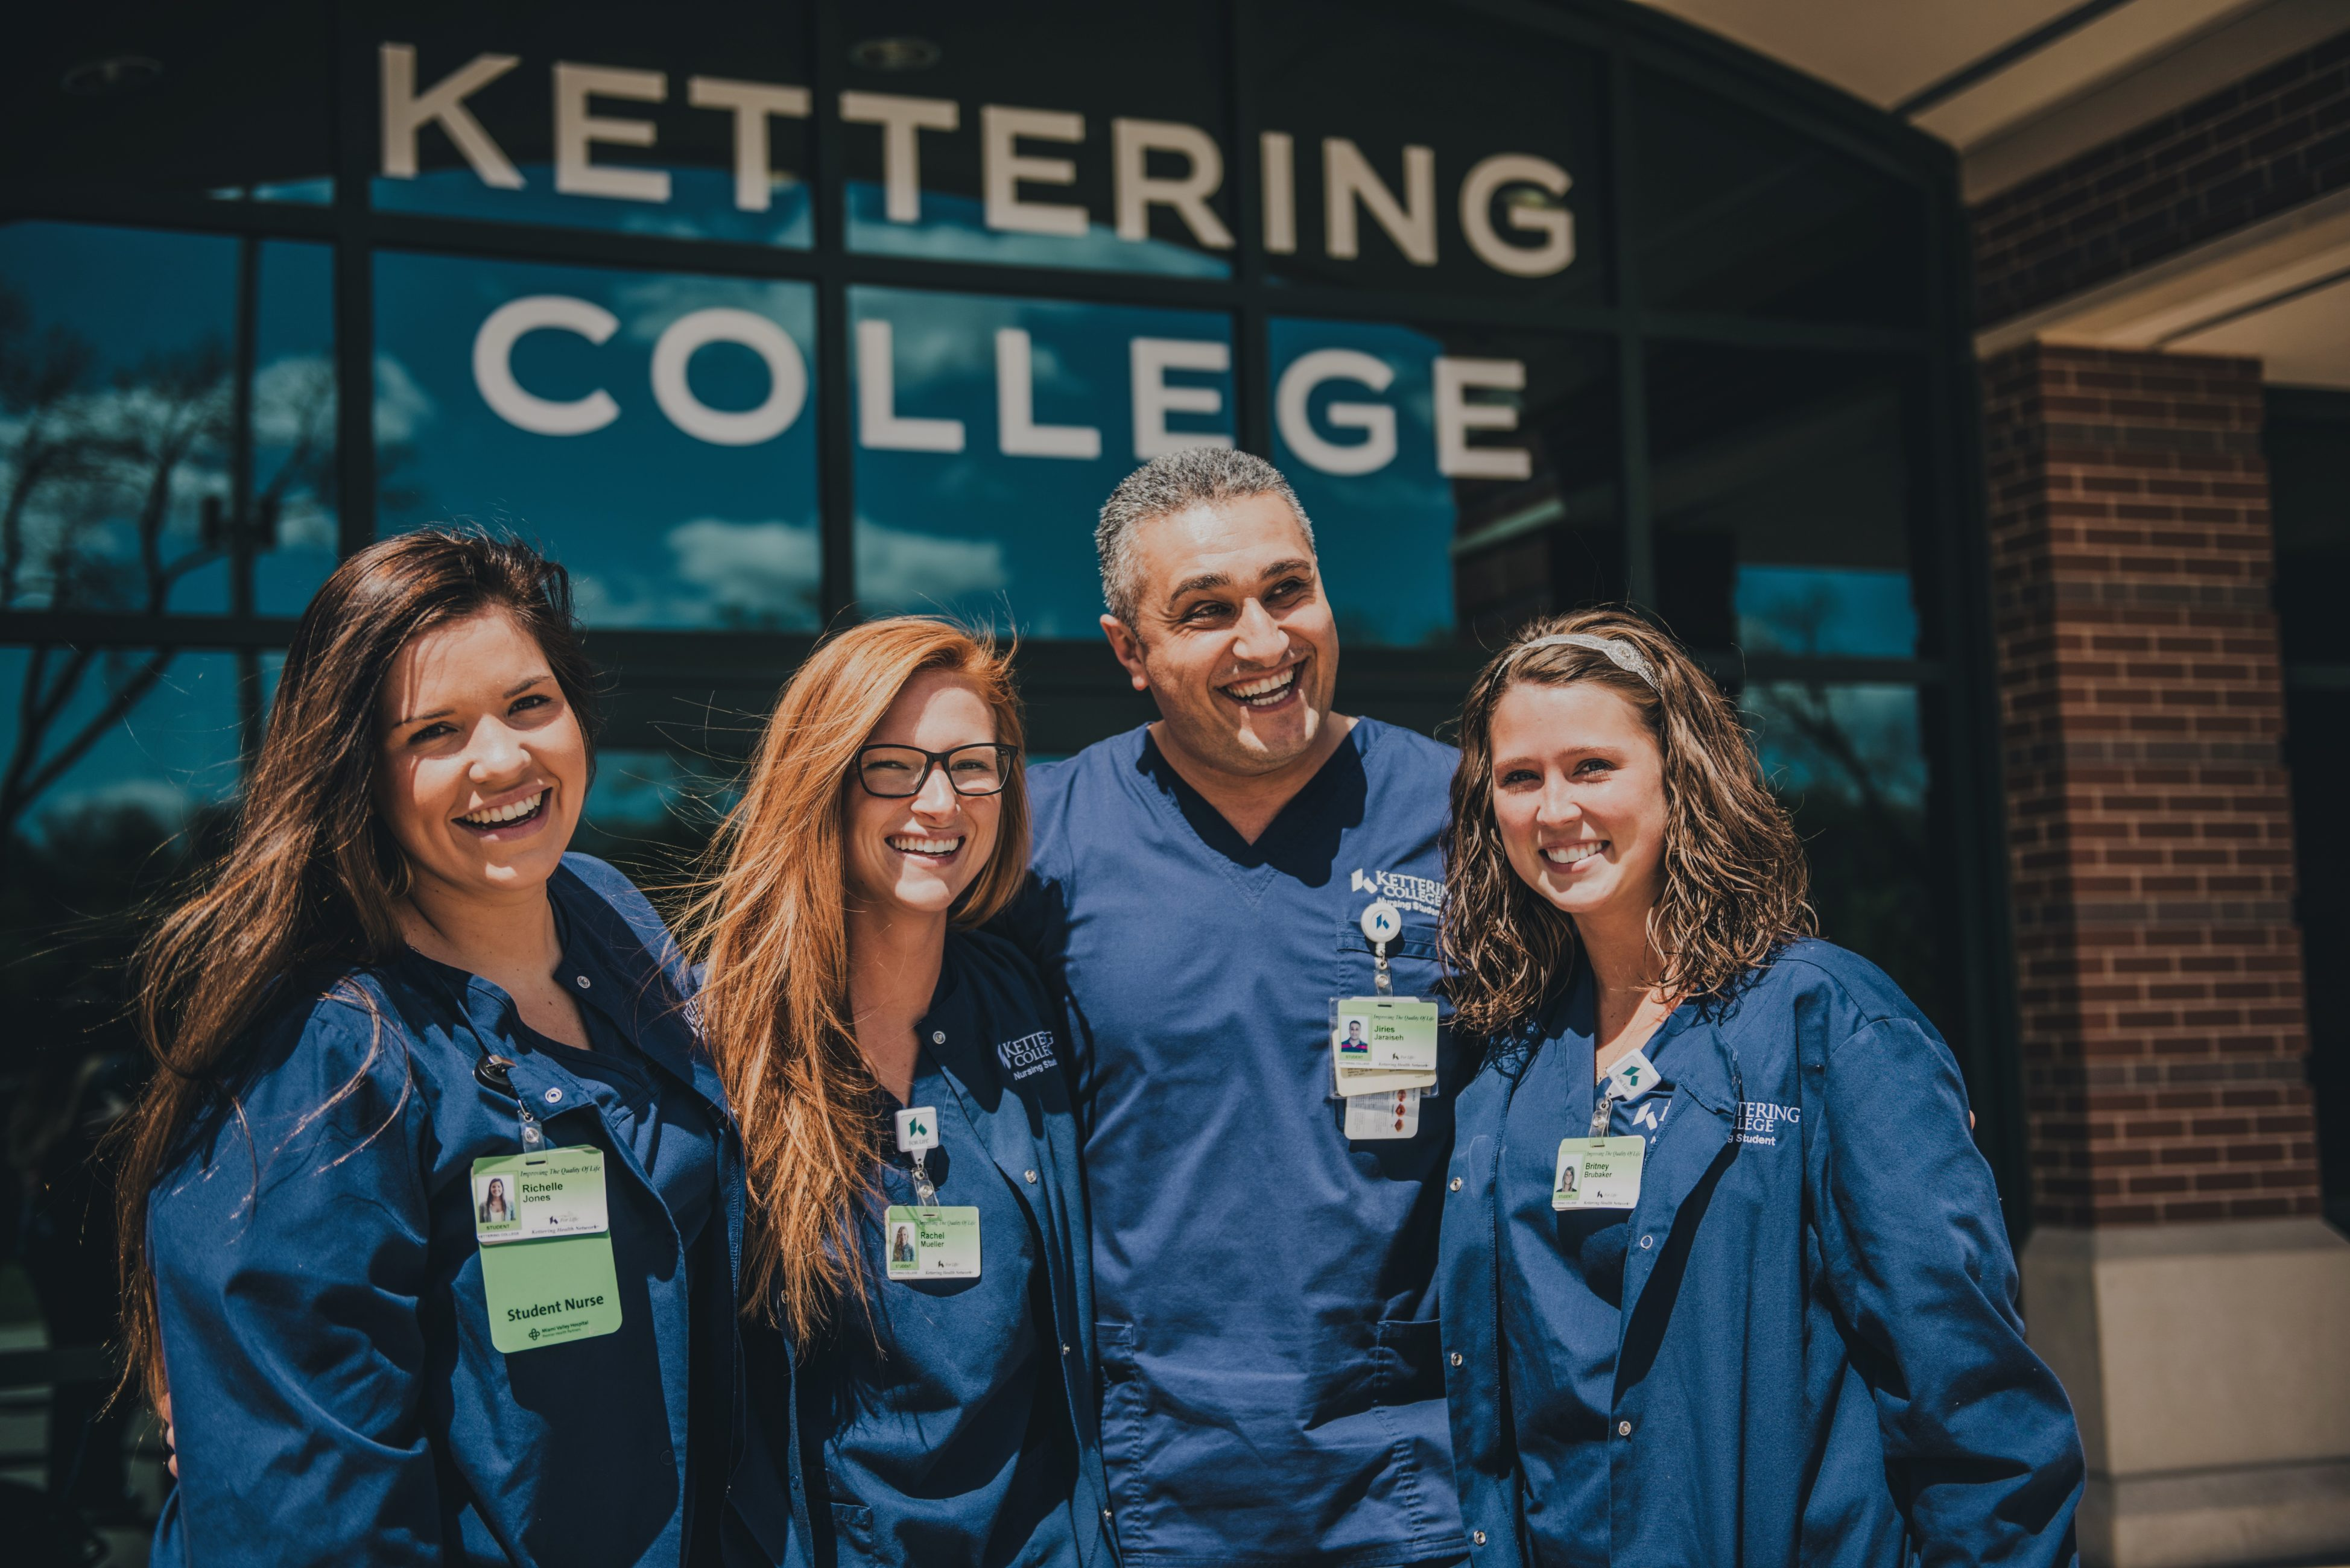 nursing students in their blue scrubs in front of Kettering College